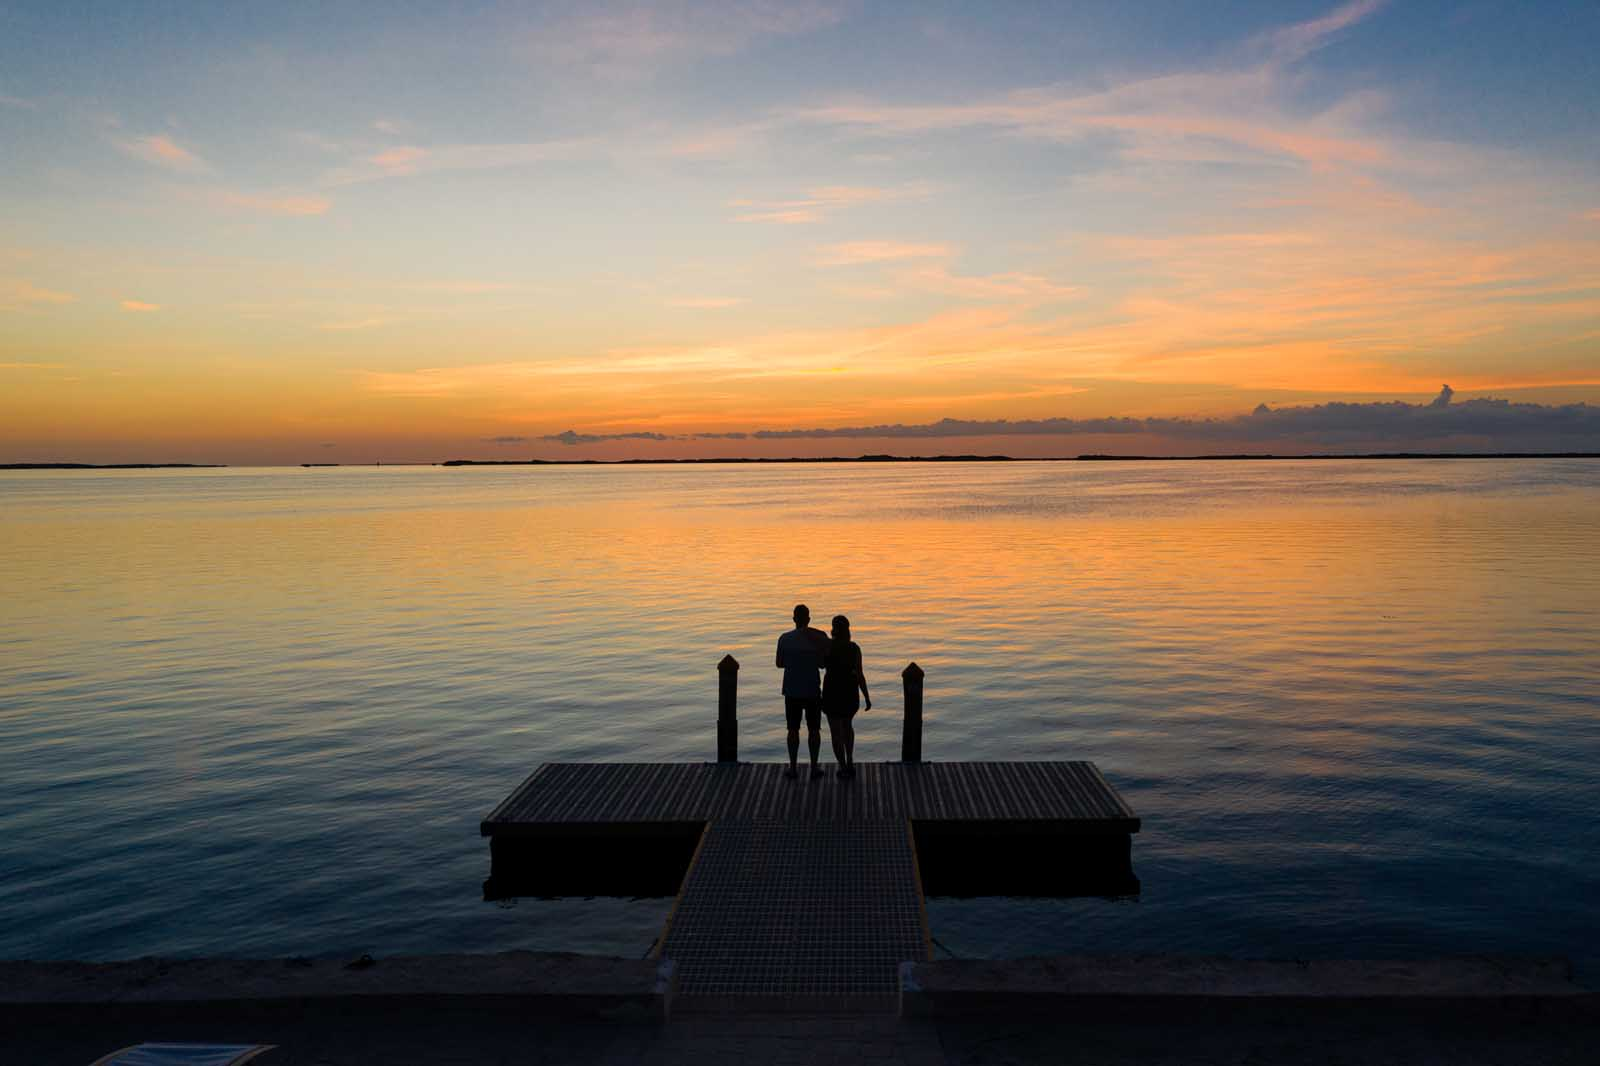 megan and scott stealing a sunset in the florida keys